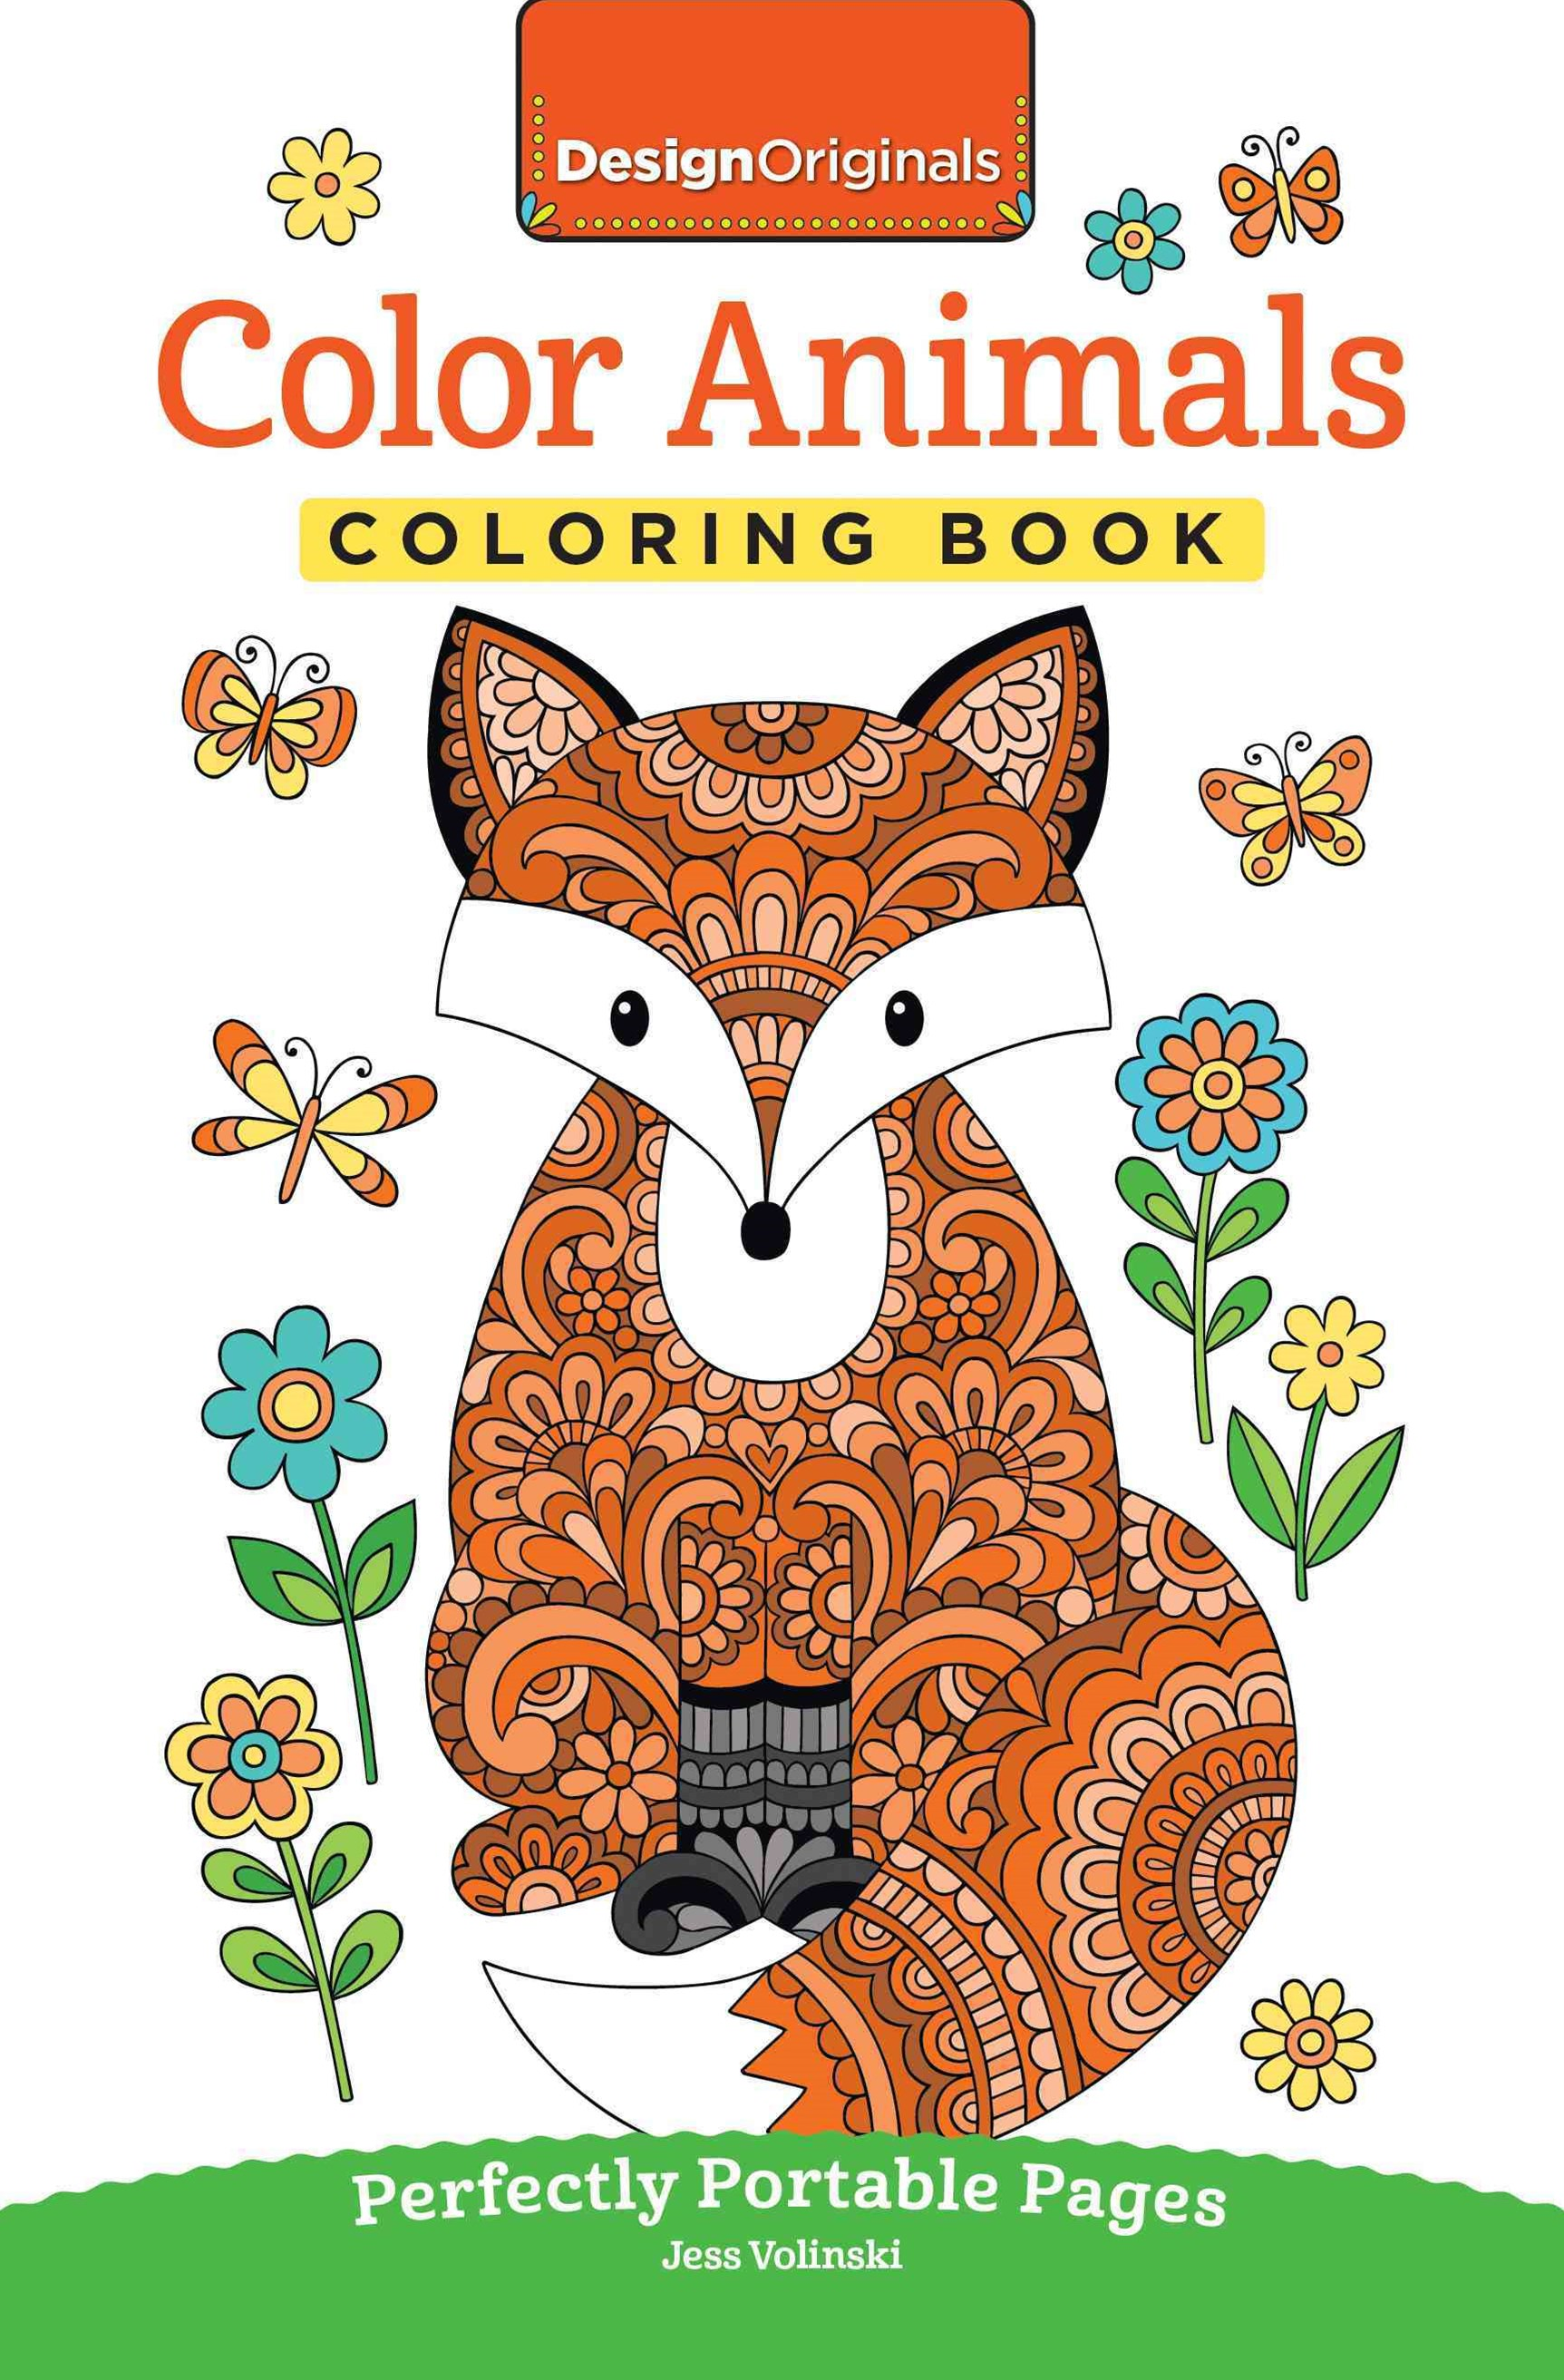 Color Animals Coloring Book